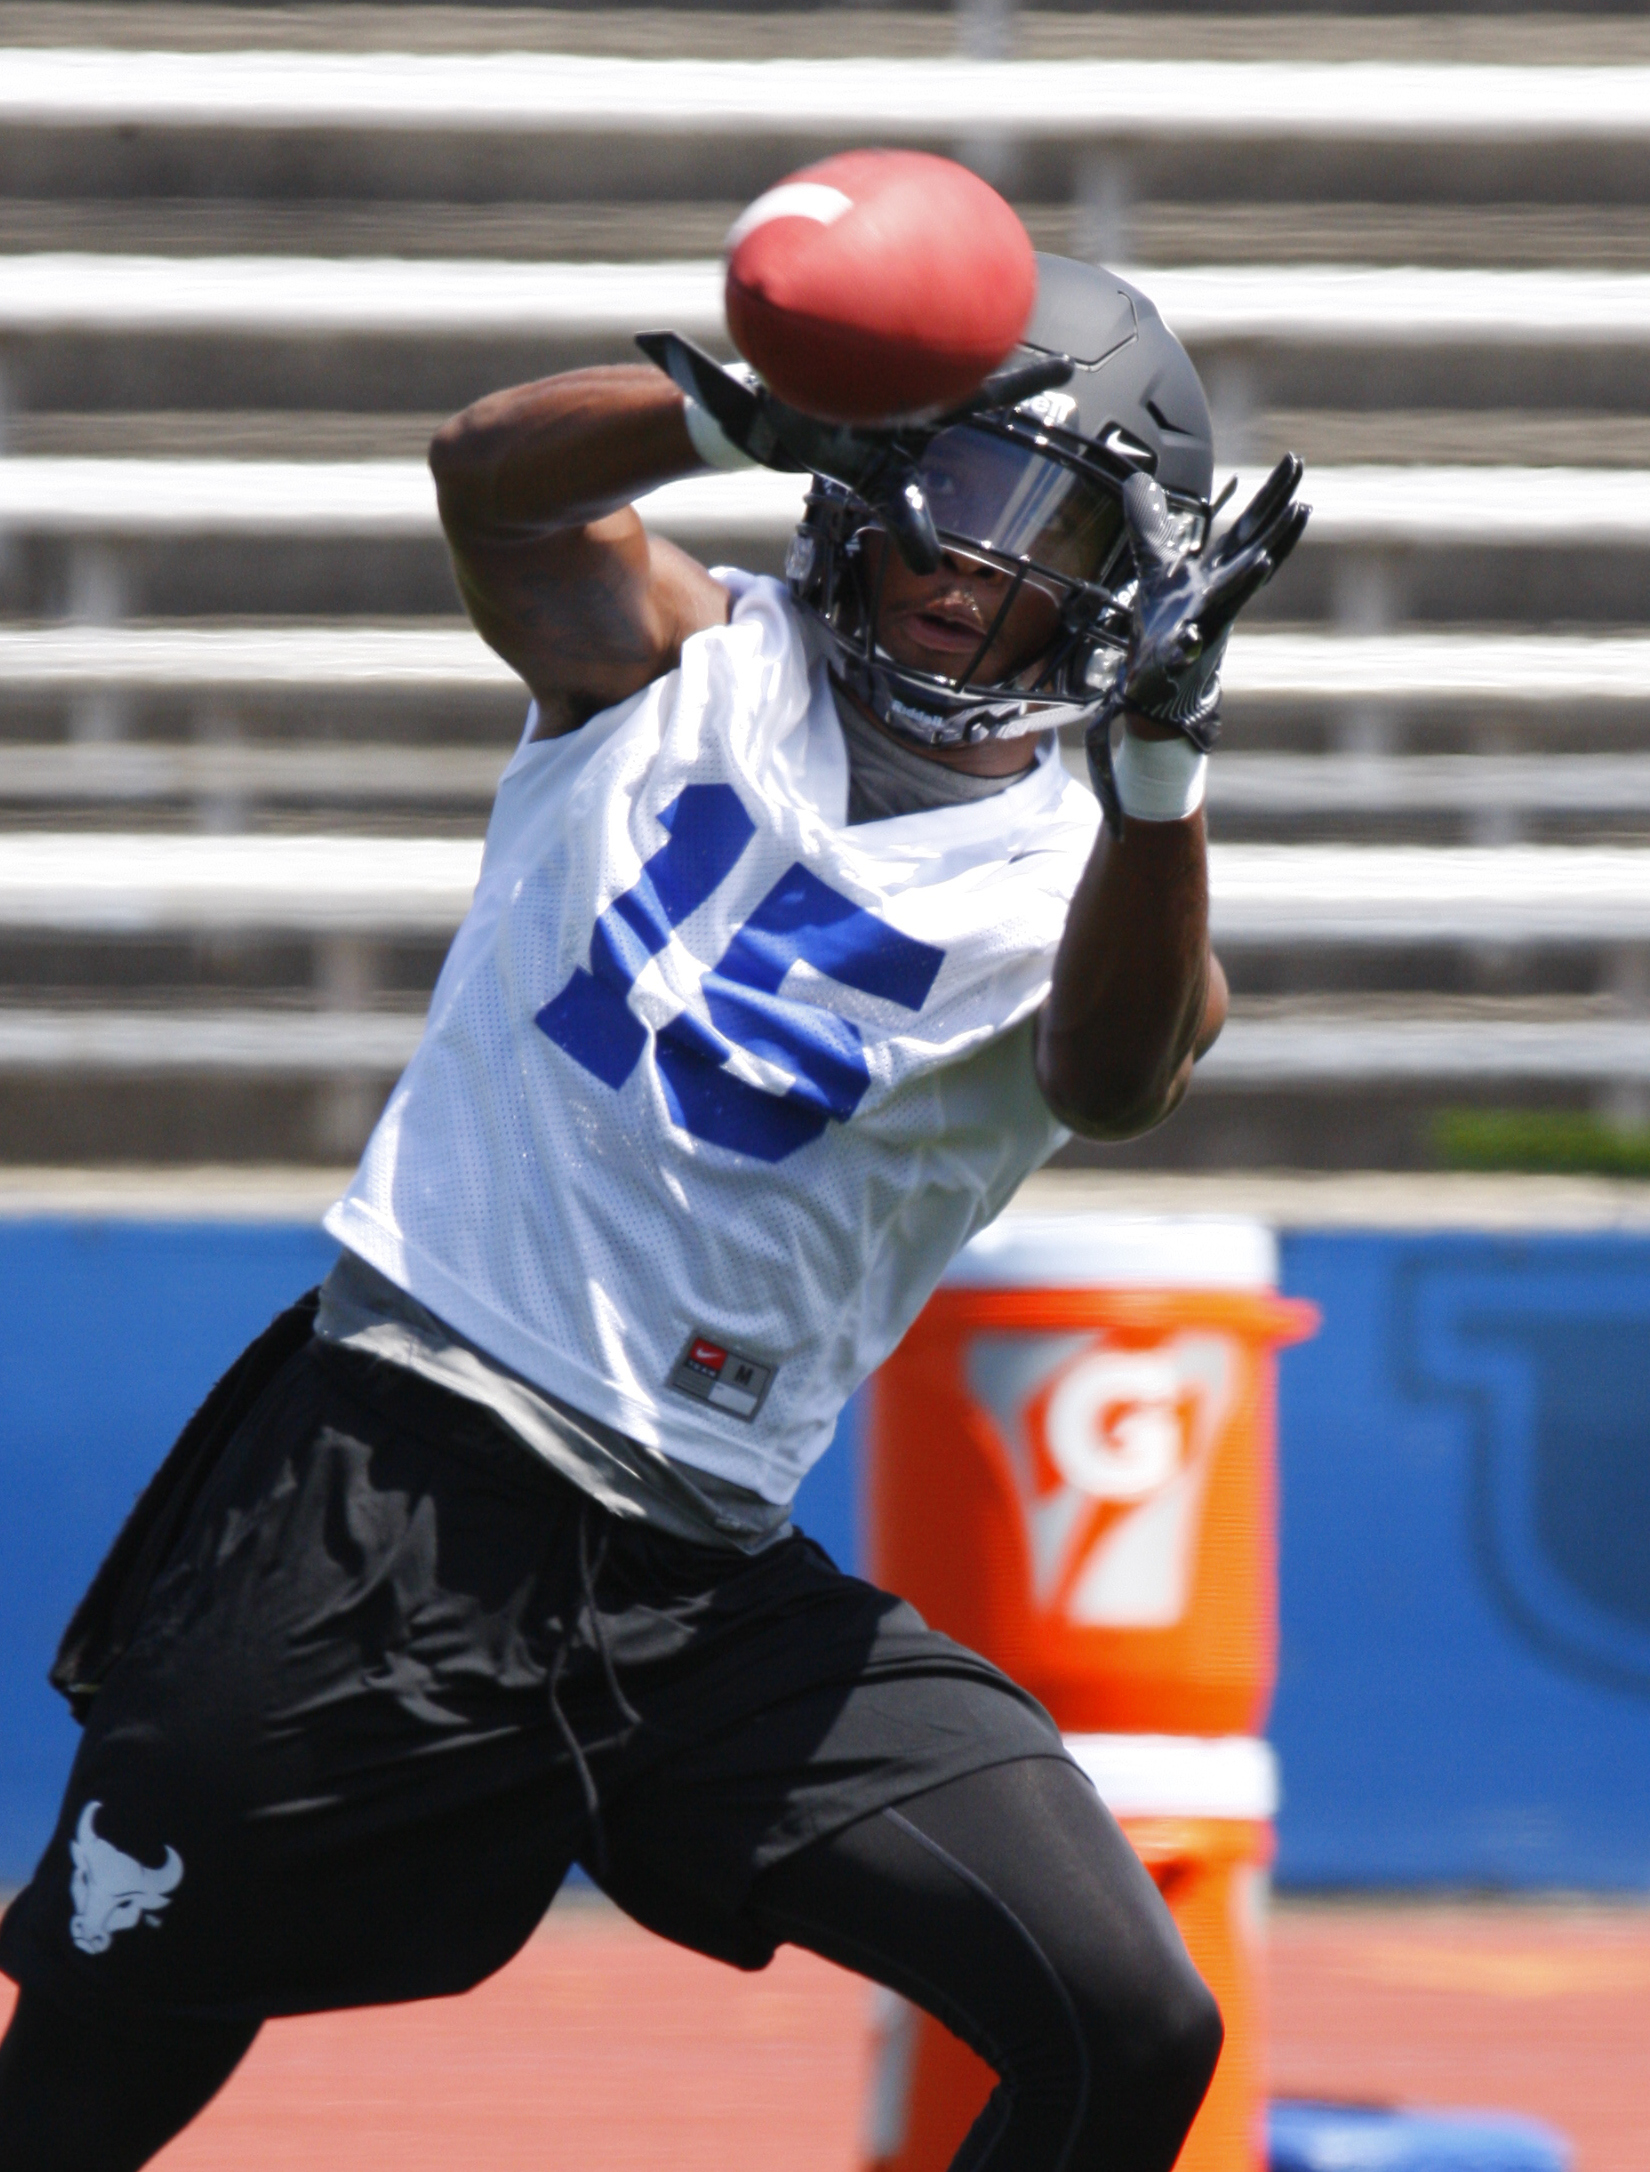 Jamarl Eiland is the punt return candidate for UB. (Harry Scull Jr./Buffalo News)